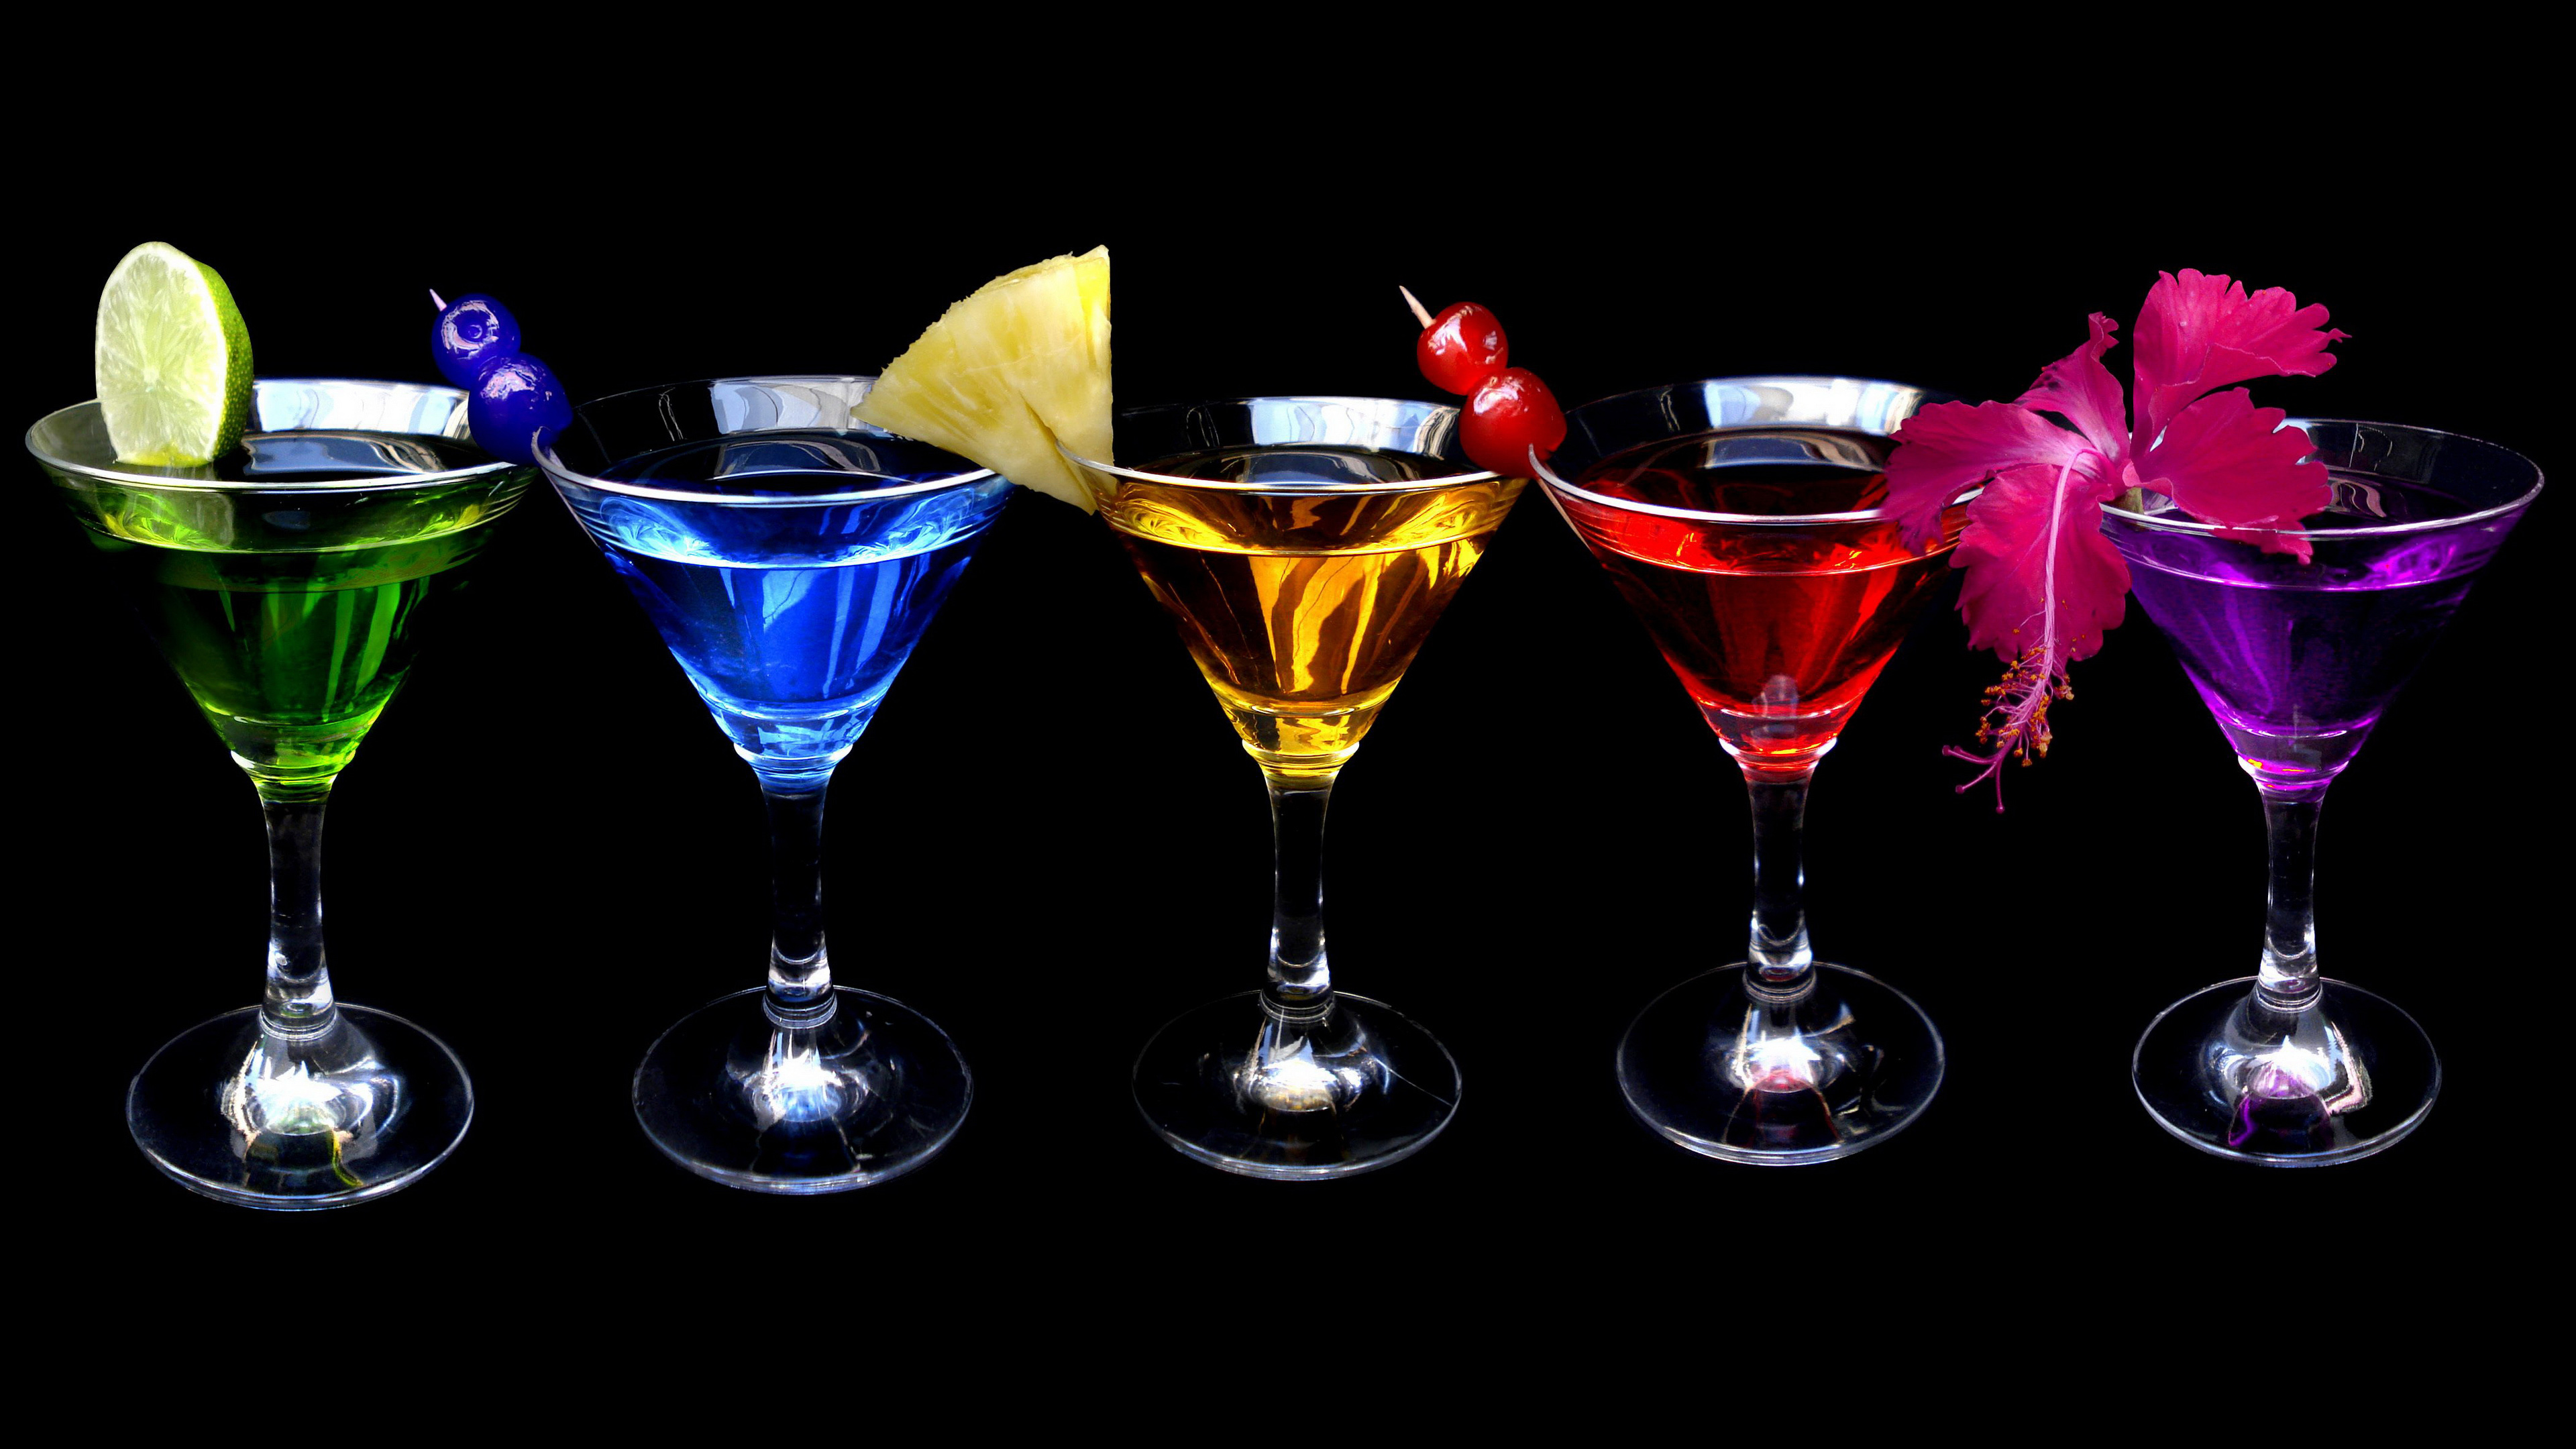 Rainbow Cocktails 4k Ultra HD Wallpaper And Background